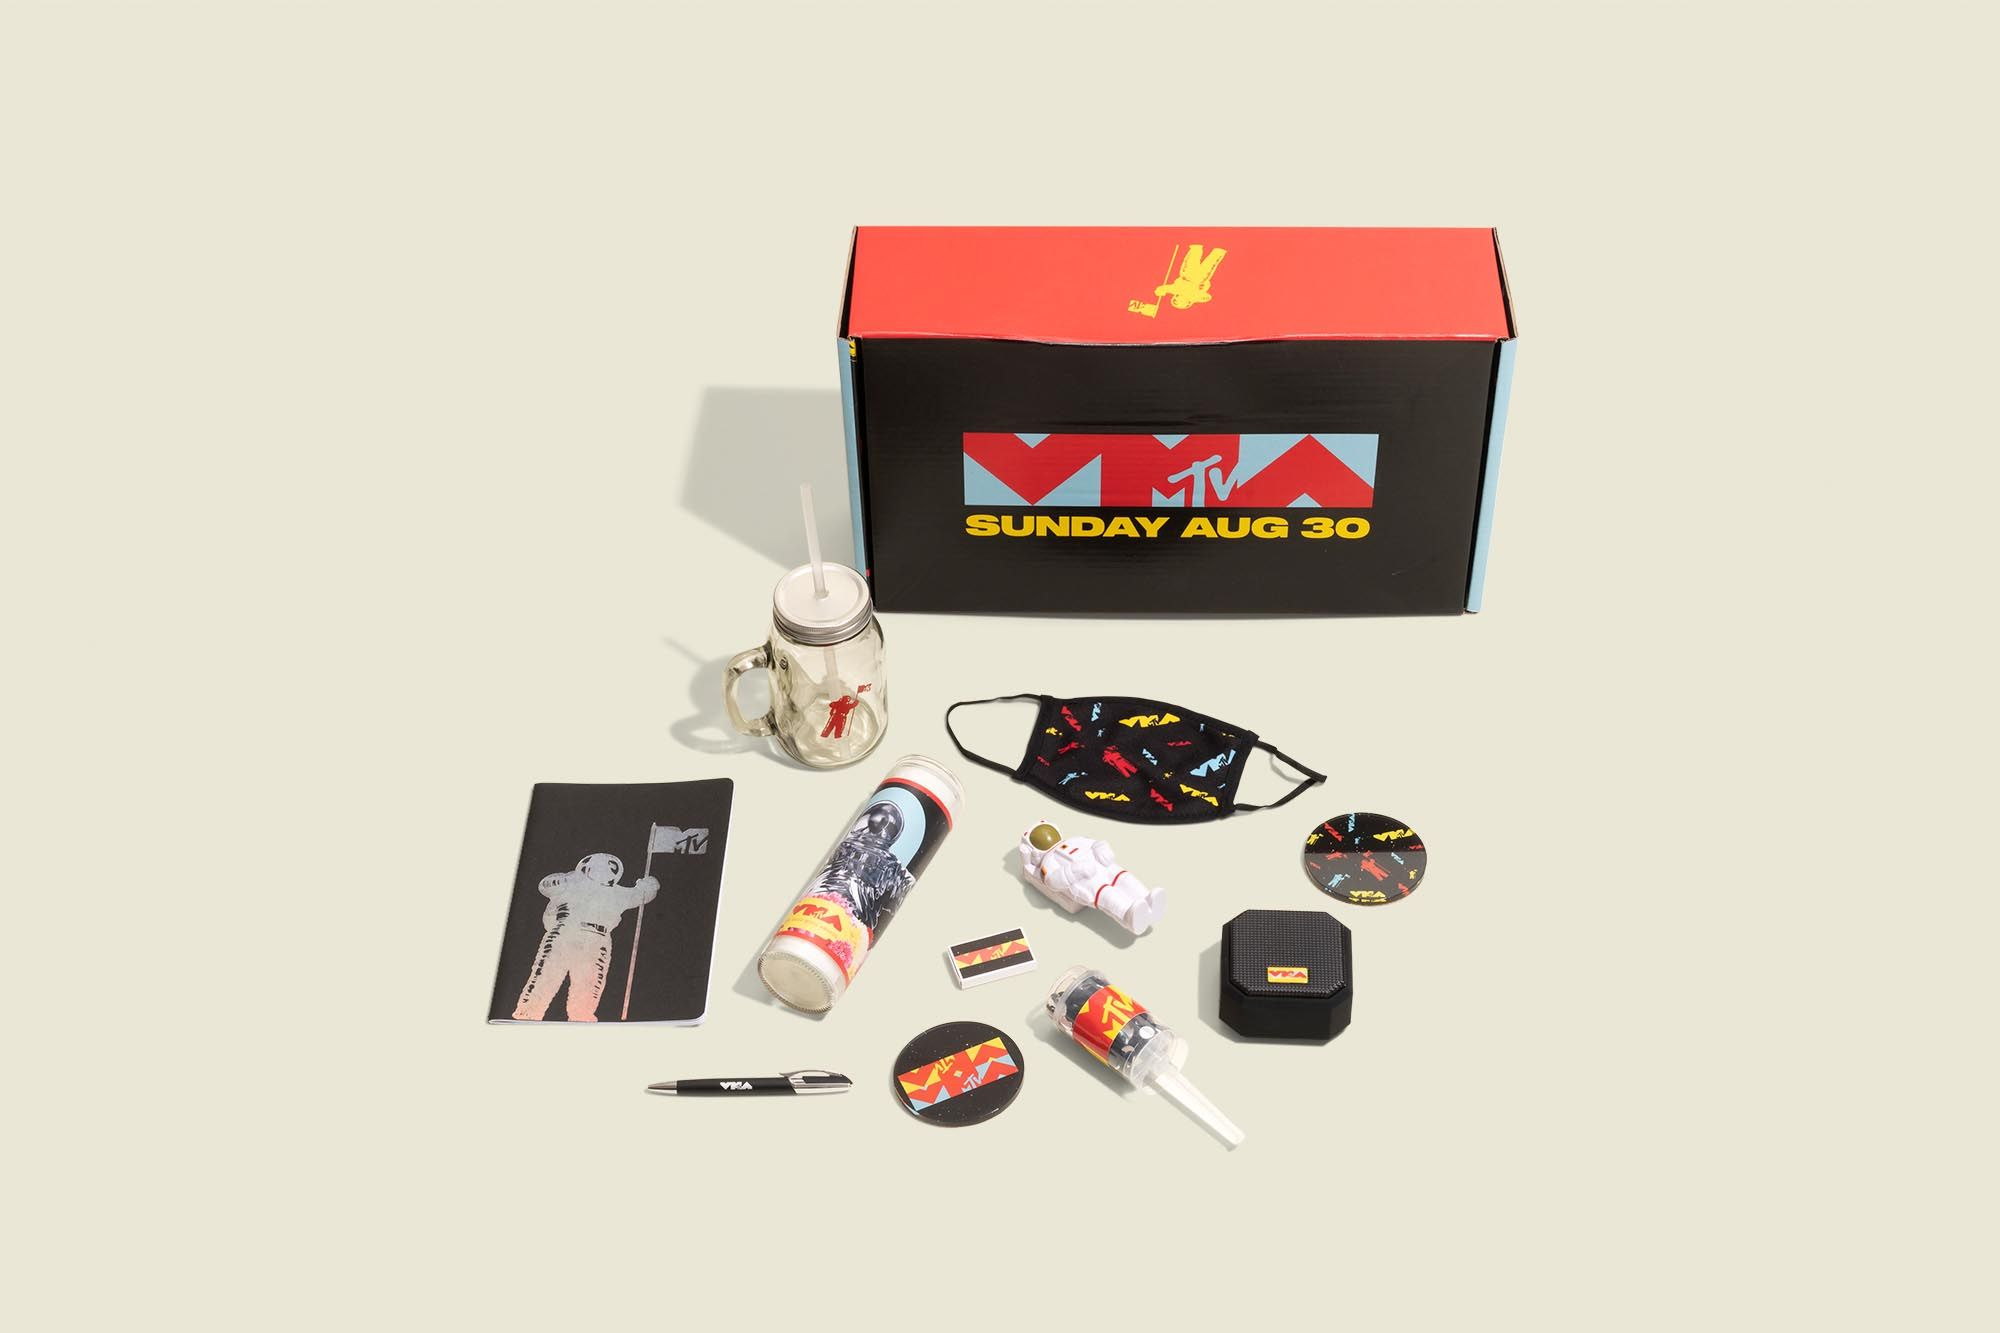 Printed box with face mask, candy, and other branded accessories